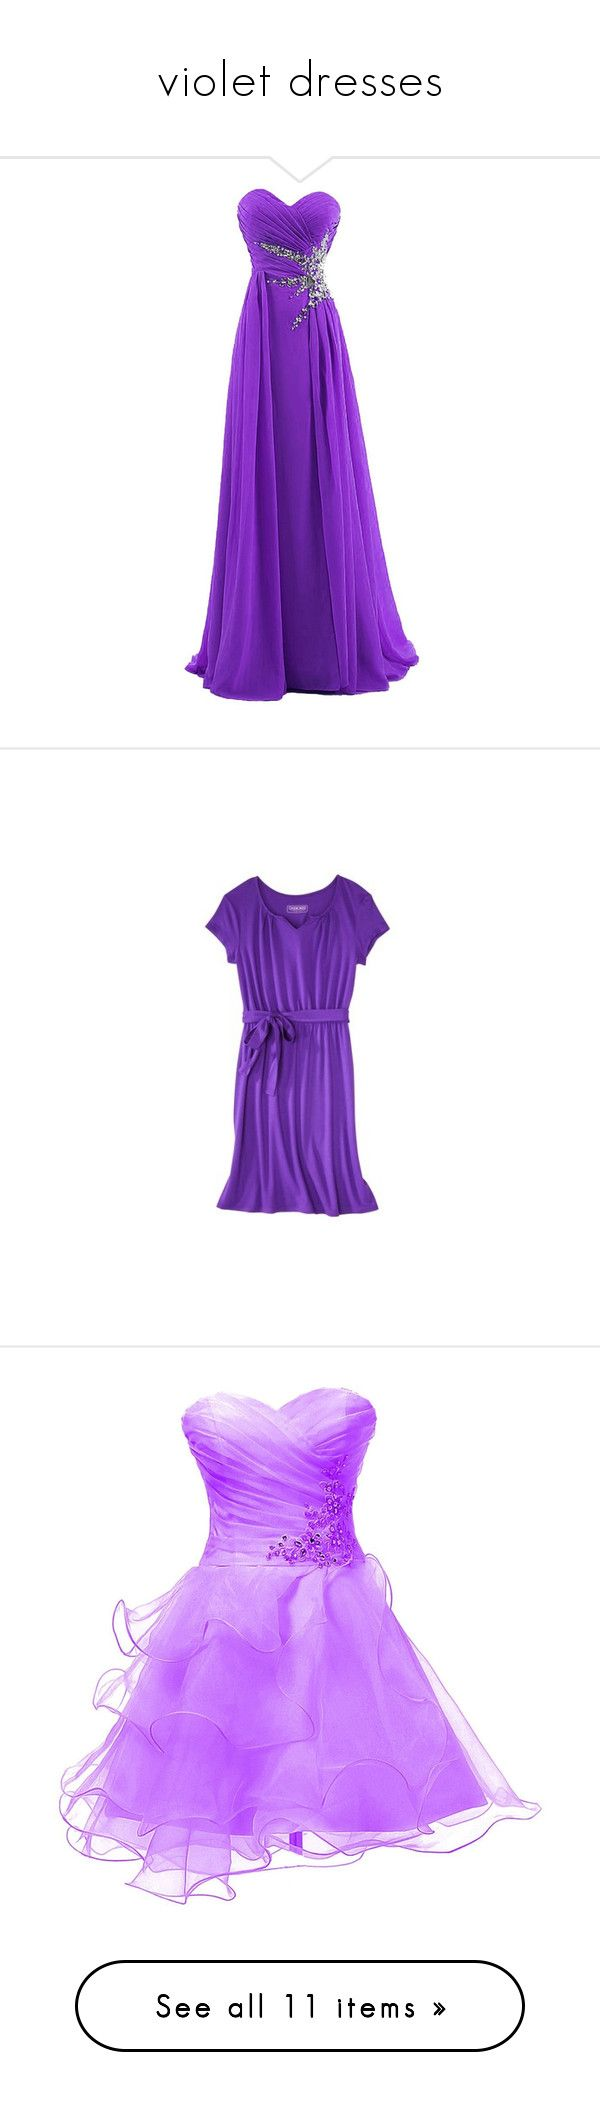 """""""violet dresses"""" by milly-love16 ❤ liked on Polyvore featuring dresses, gowns, long dresses, purple, robes, beaded evening gowns, purple gown, purple ball gowns, chiffon prom dresses and sweetheart neckline prom dress"""